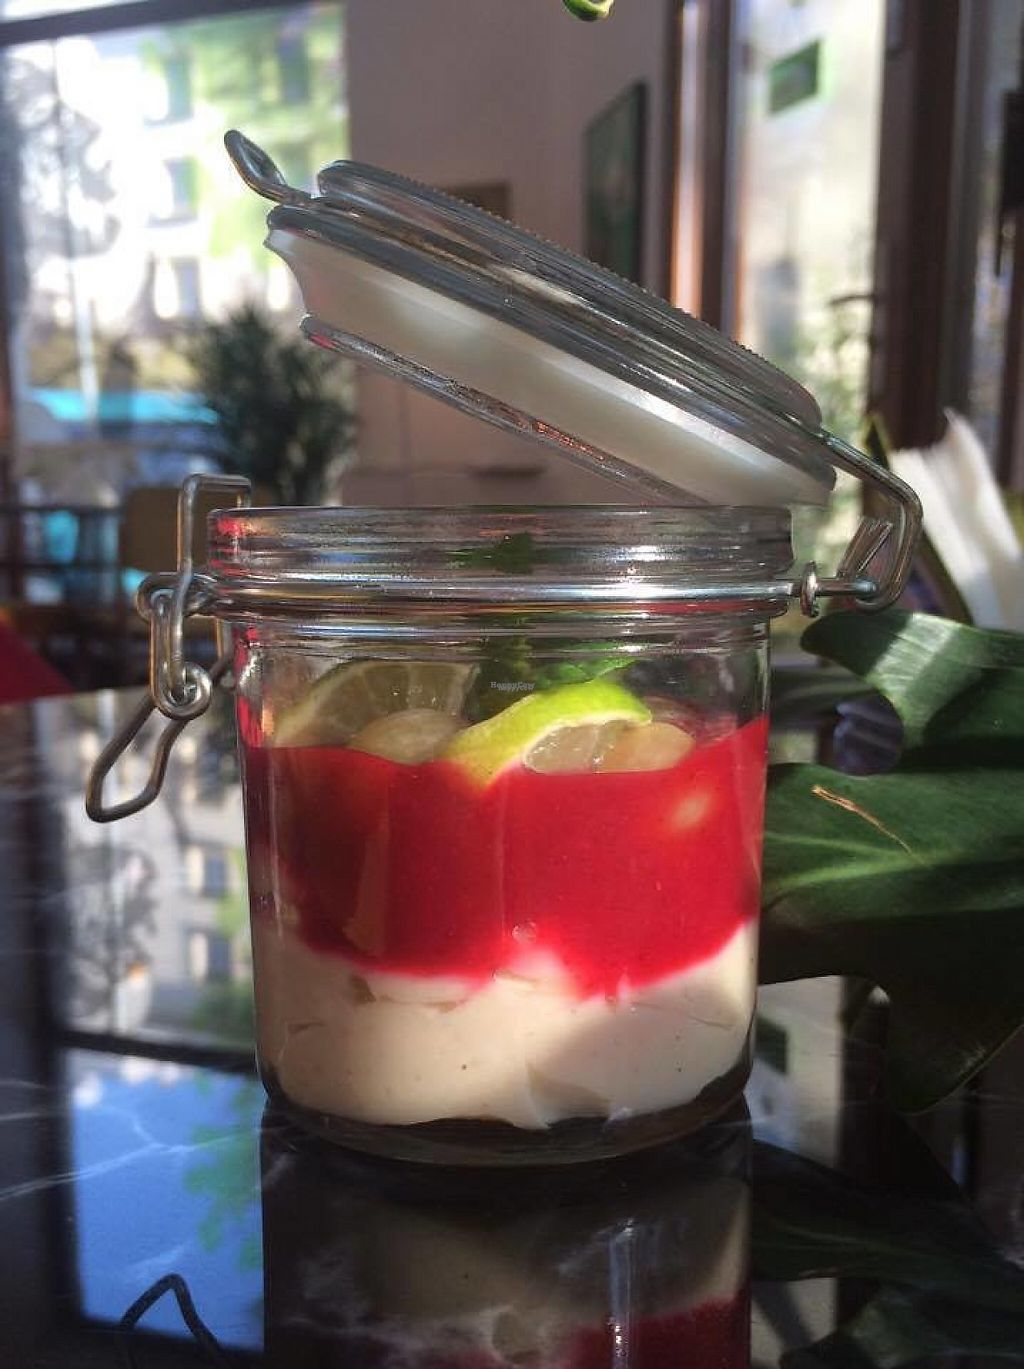 """Photo of CLOSED: Go Healthy  by <a href=""""/members/profile/kacha.garczynska"""">kacha.garczynska</a> <br/>Rice pudding and sauce with forest fruits <br/> November 25, 2016  - <a href='/contact/abuse/image/79506/194406'>Report</a>"""